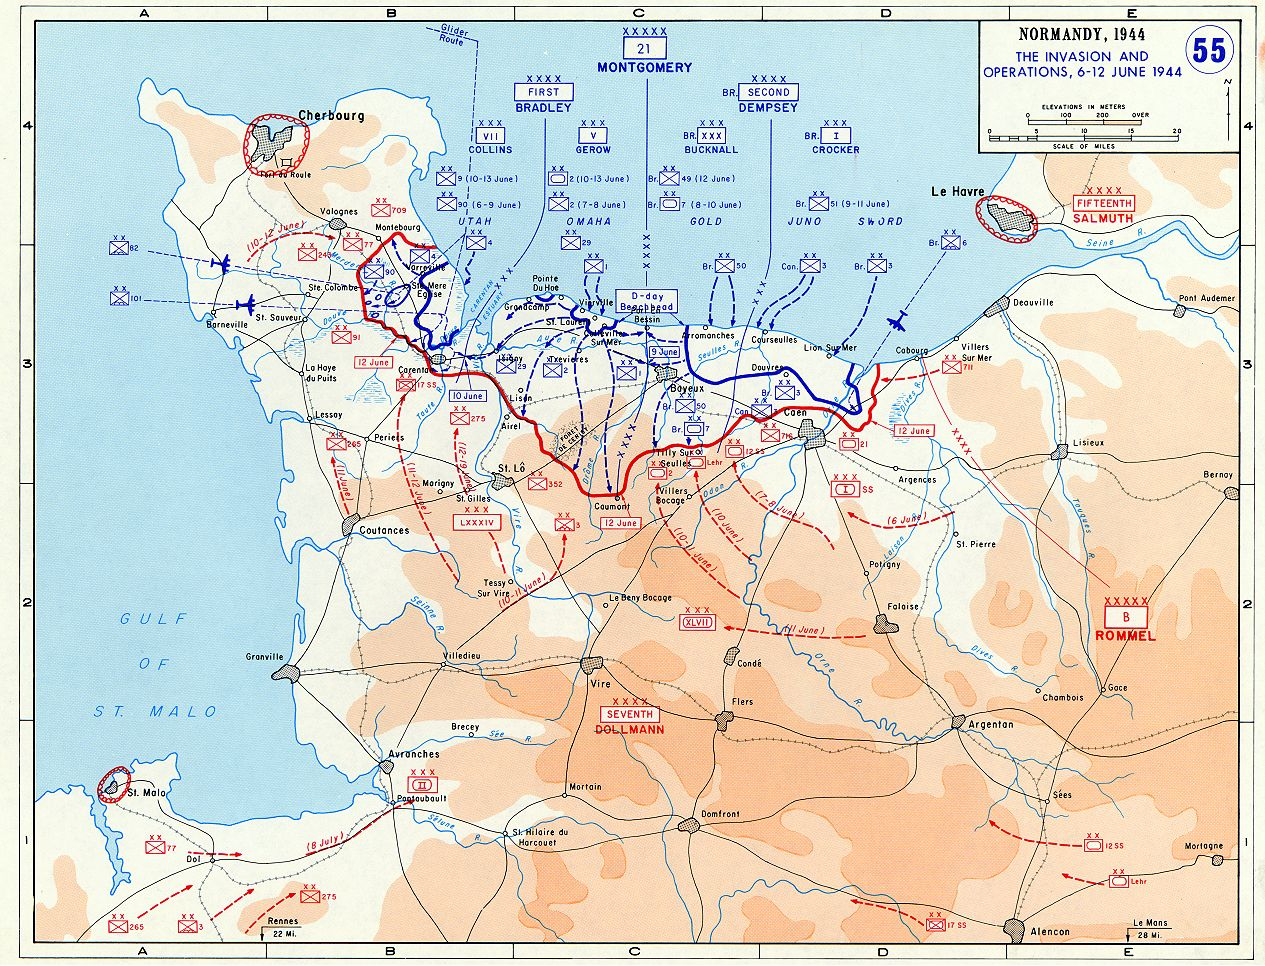 This map shows the battle which was fought between the Allied